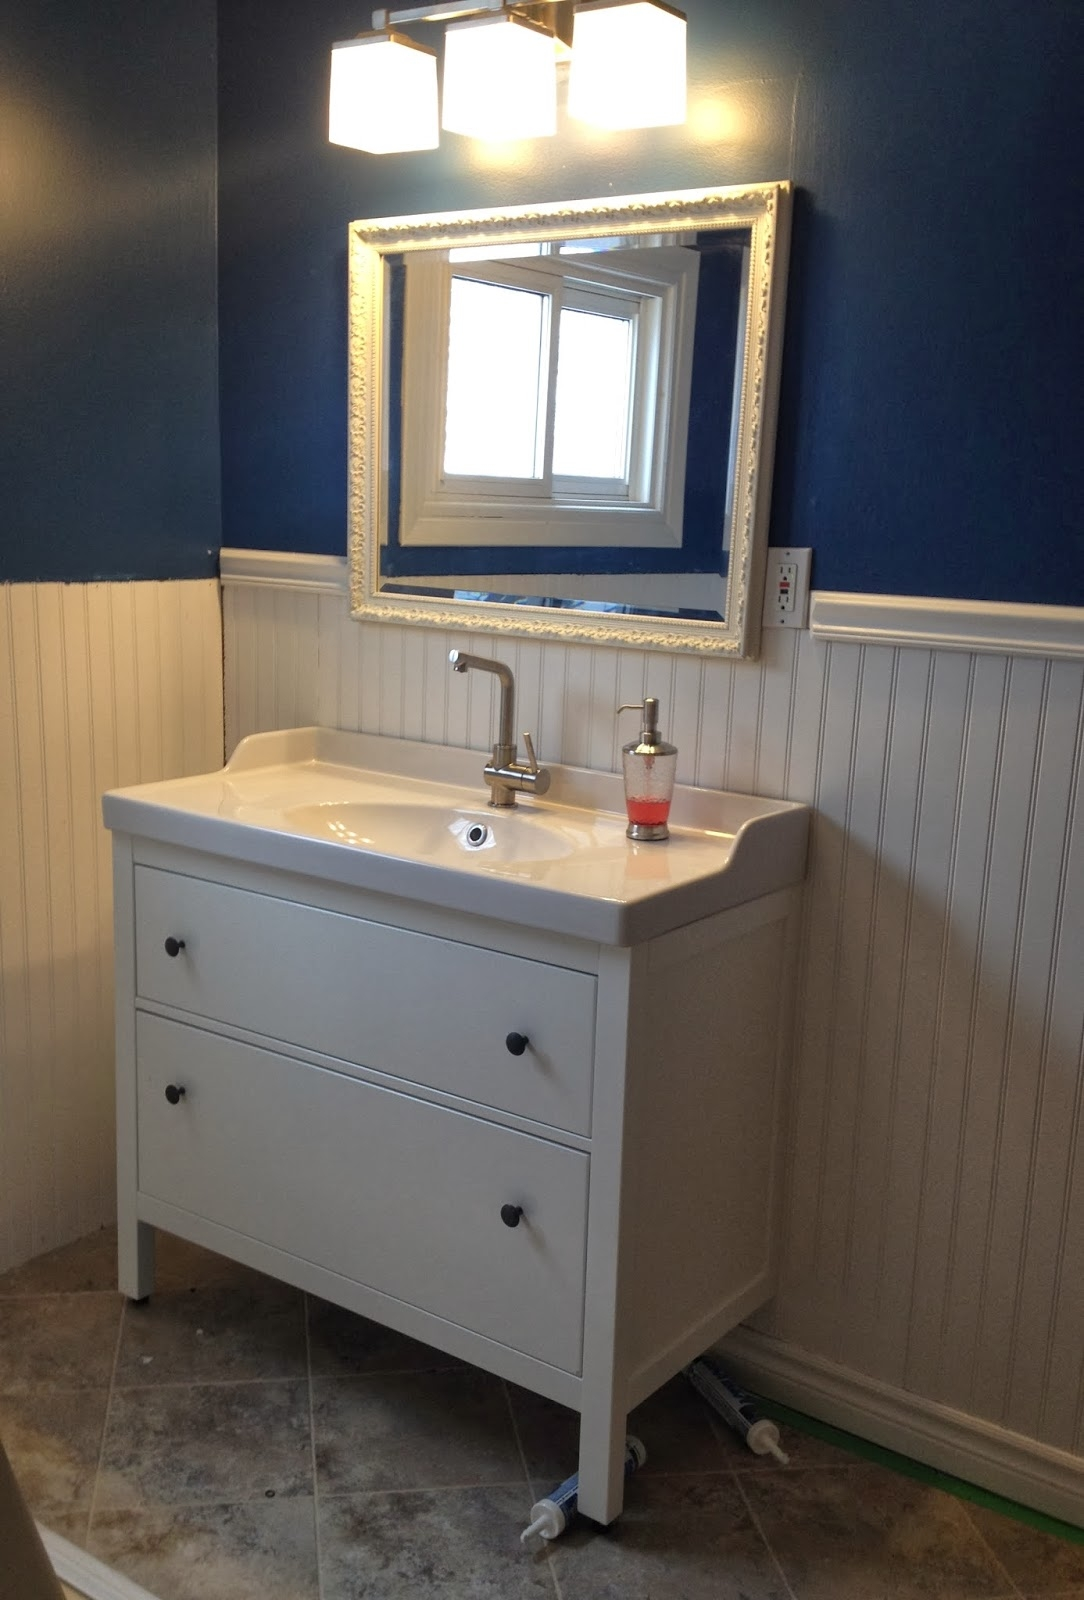 Permalink to Ikea Bathroom Vanity Plumbing Reviews